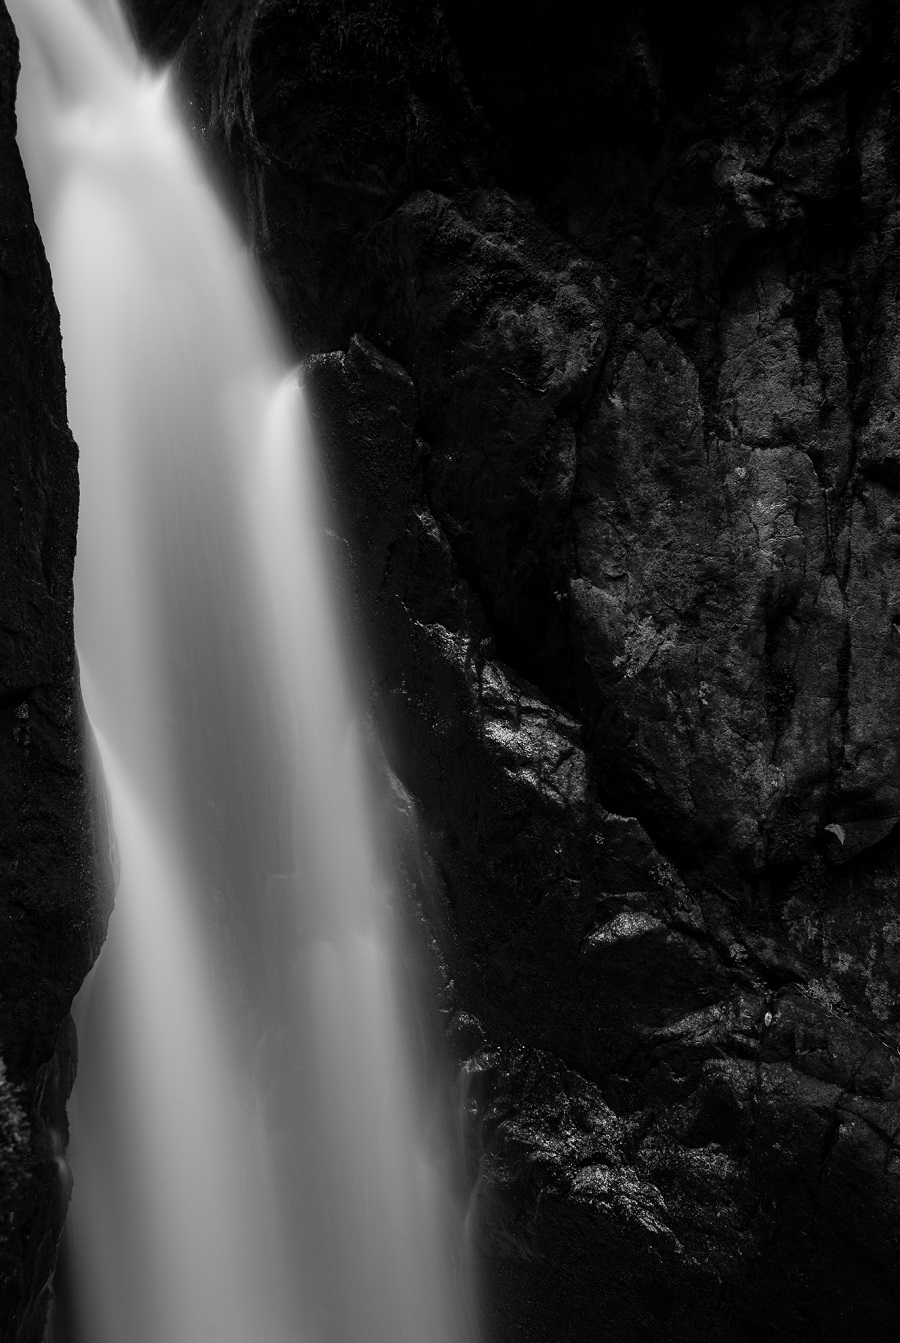 Having a telephoto lens in your waterfall photography arsenal allows you to experiment with your composition.